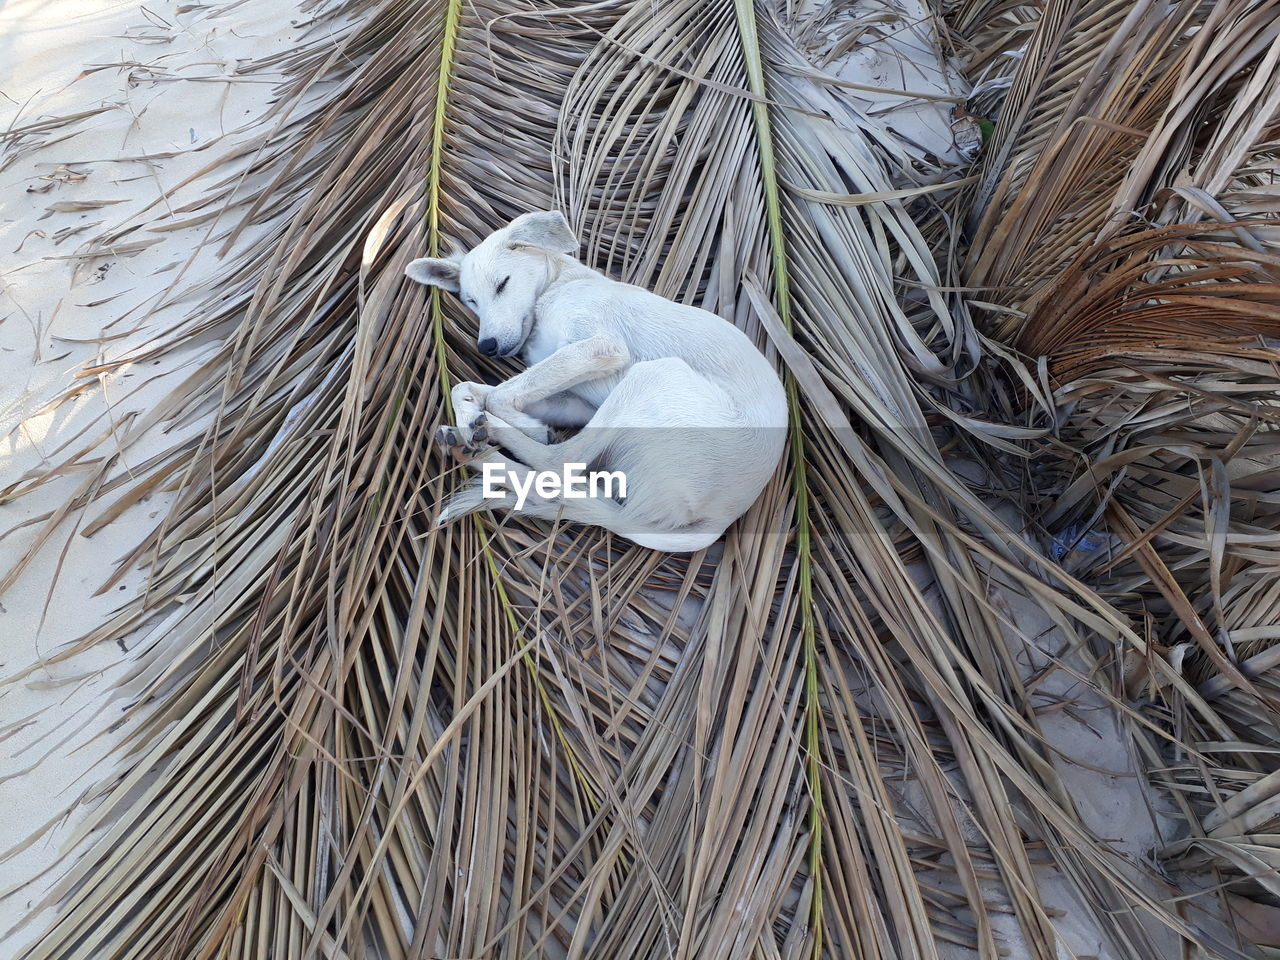 High Angle View Of Dog Sleeping On Dry Palm Leaves At Beach